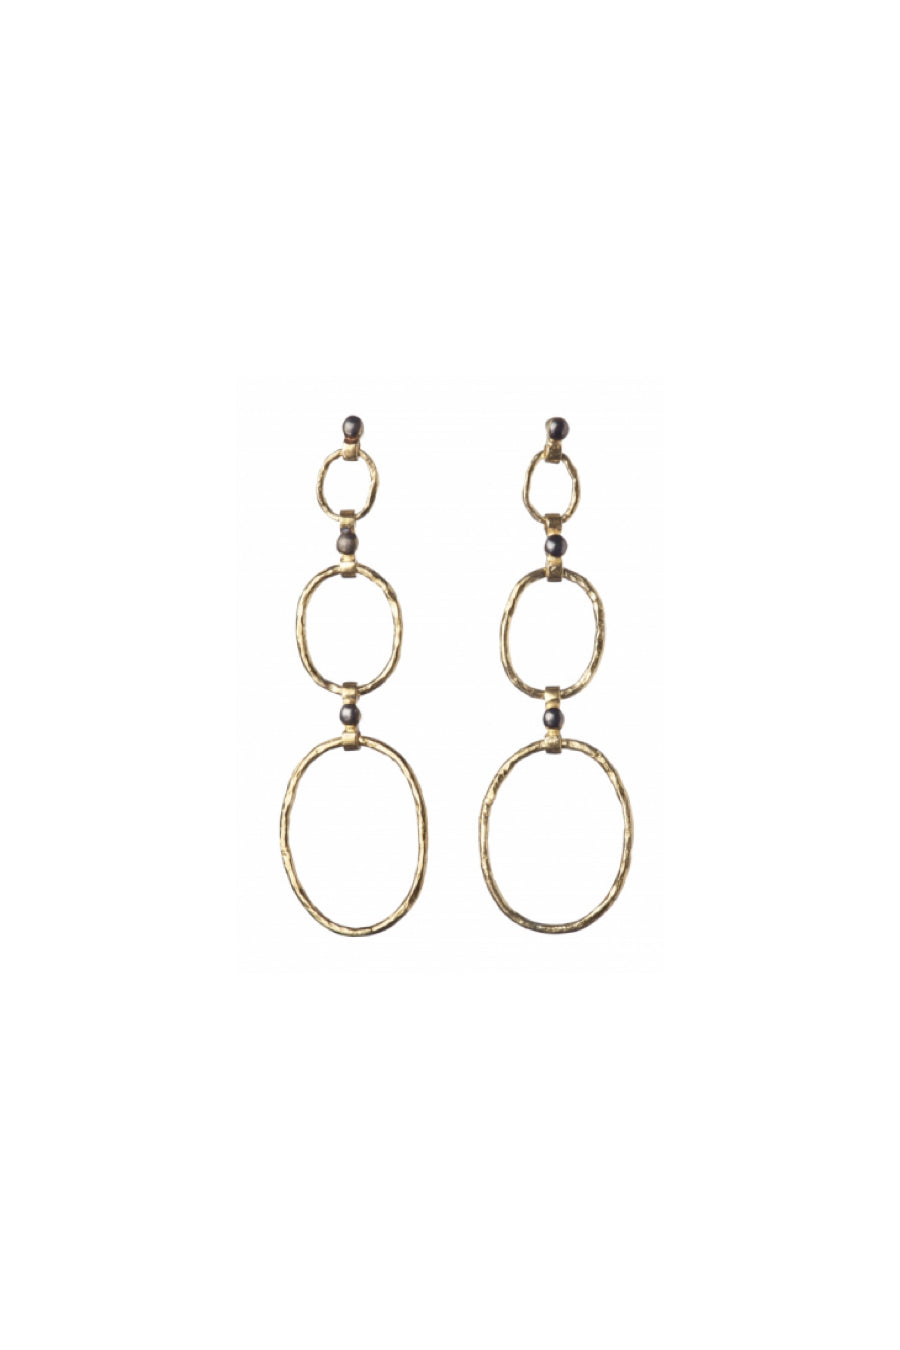 5 Octobre Bo Bea 3 Dot Earrings